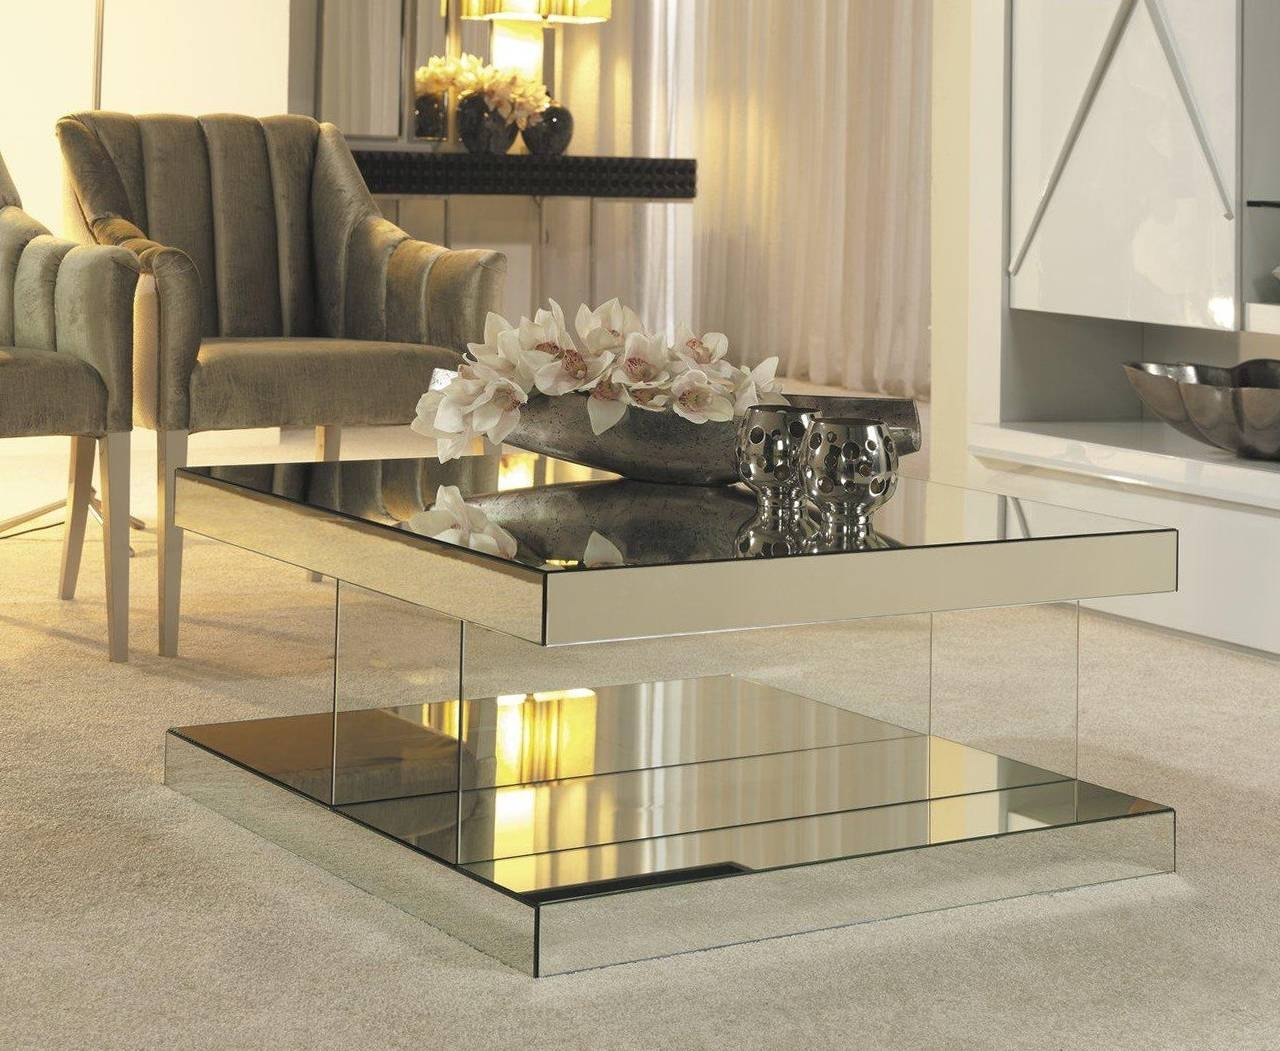 Awesome Mirrored Coffee Tables With Coffee Table Best Mirrored pertaining to Small Mirrored Coffee Tables (Image 1 of 30)